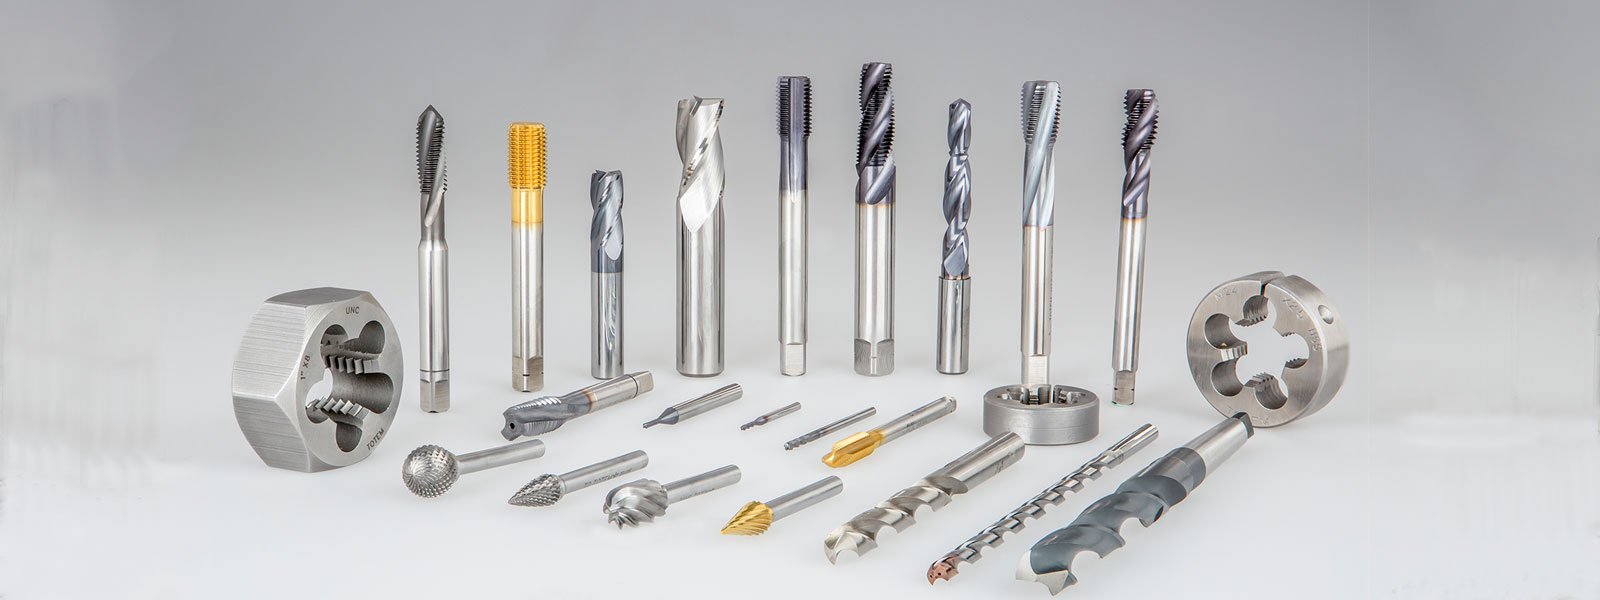 Special tool about Drilling and Milling